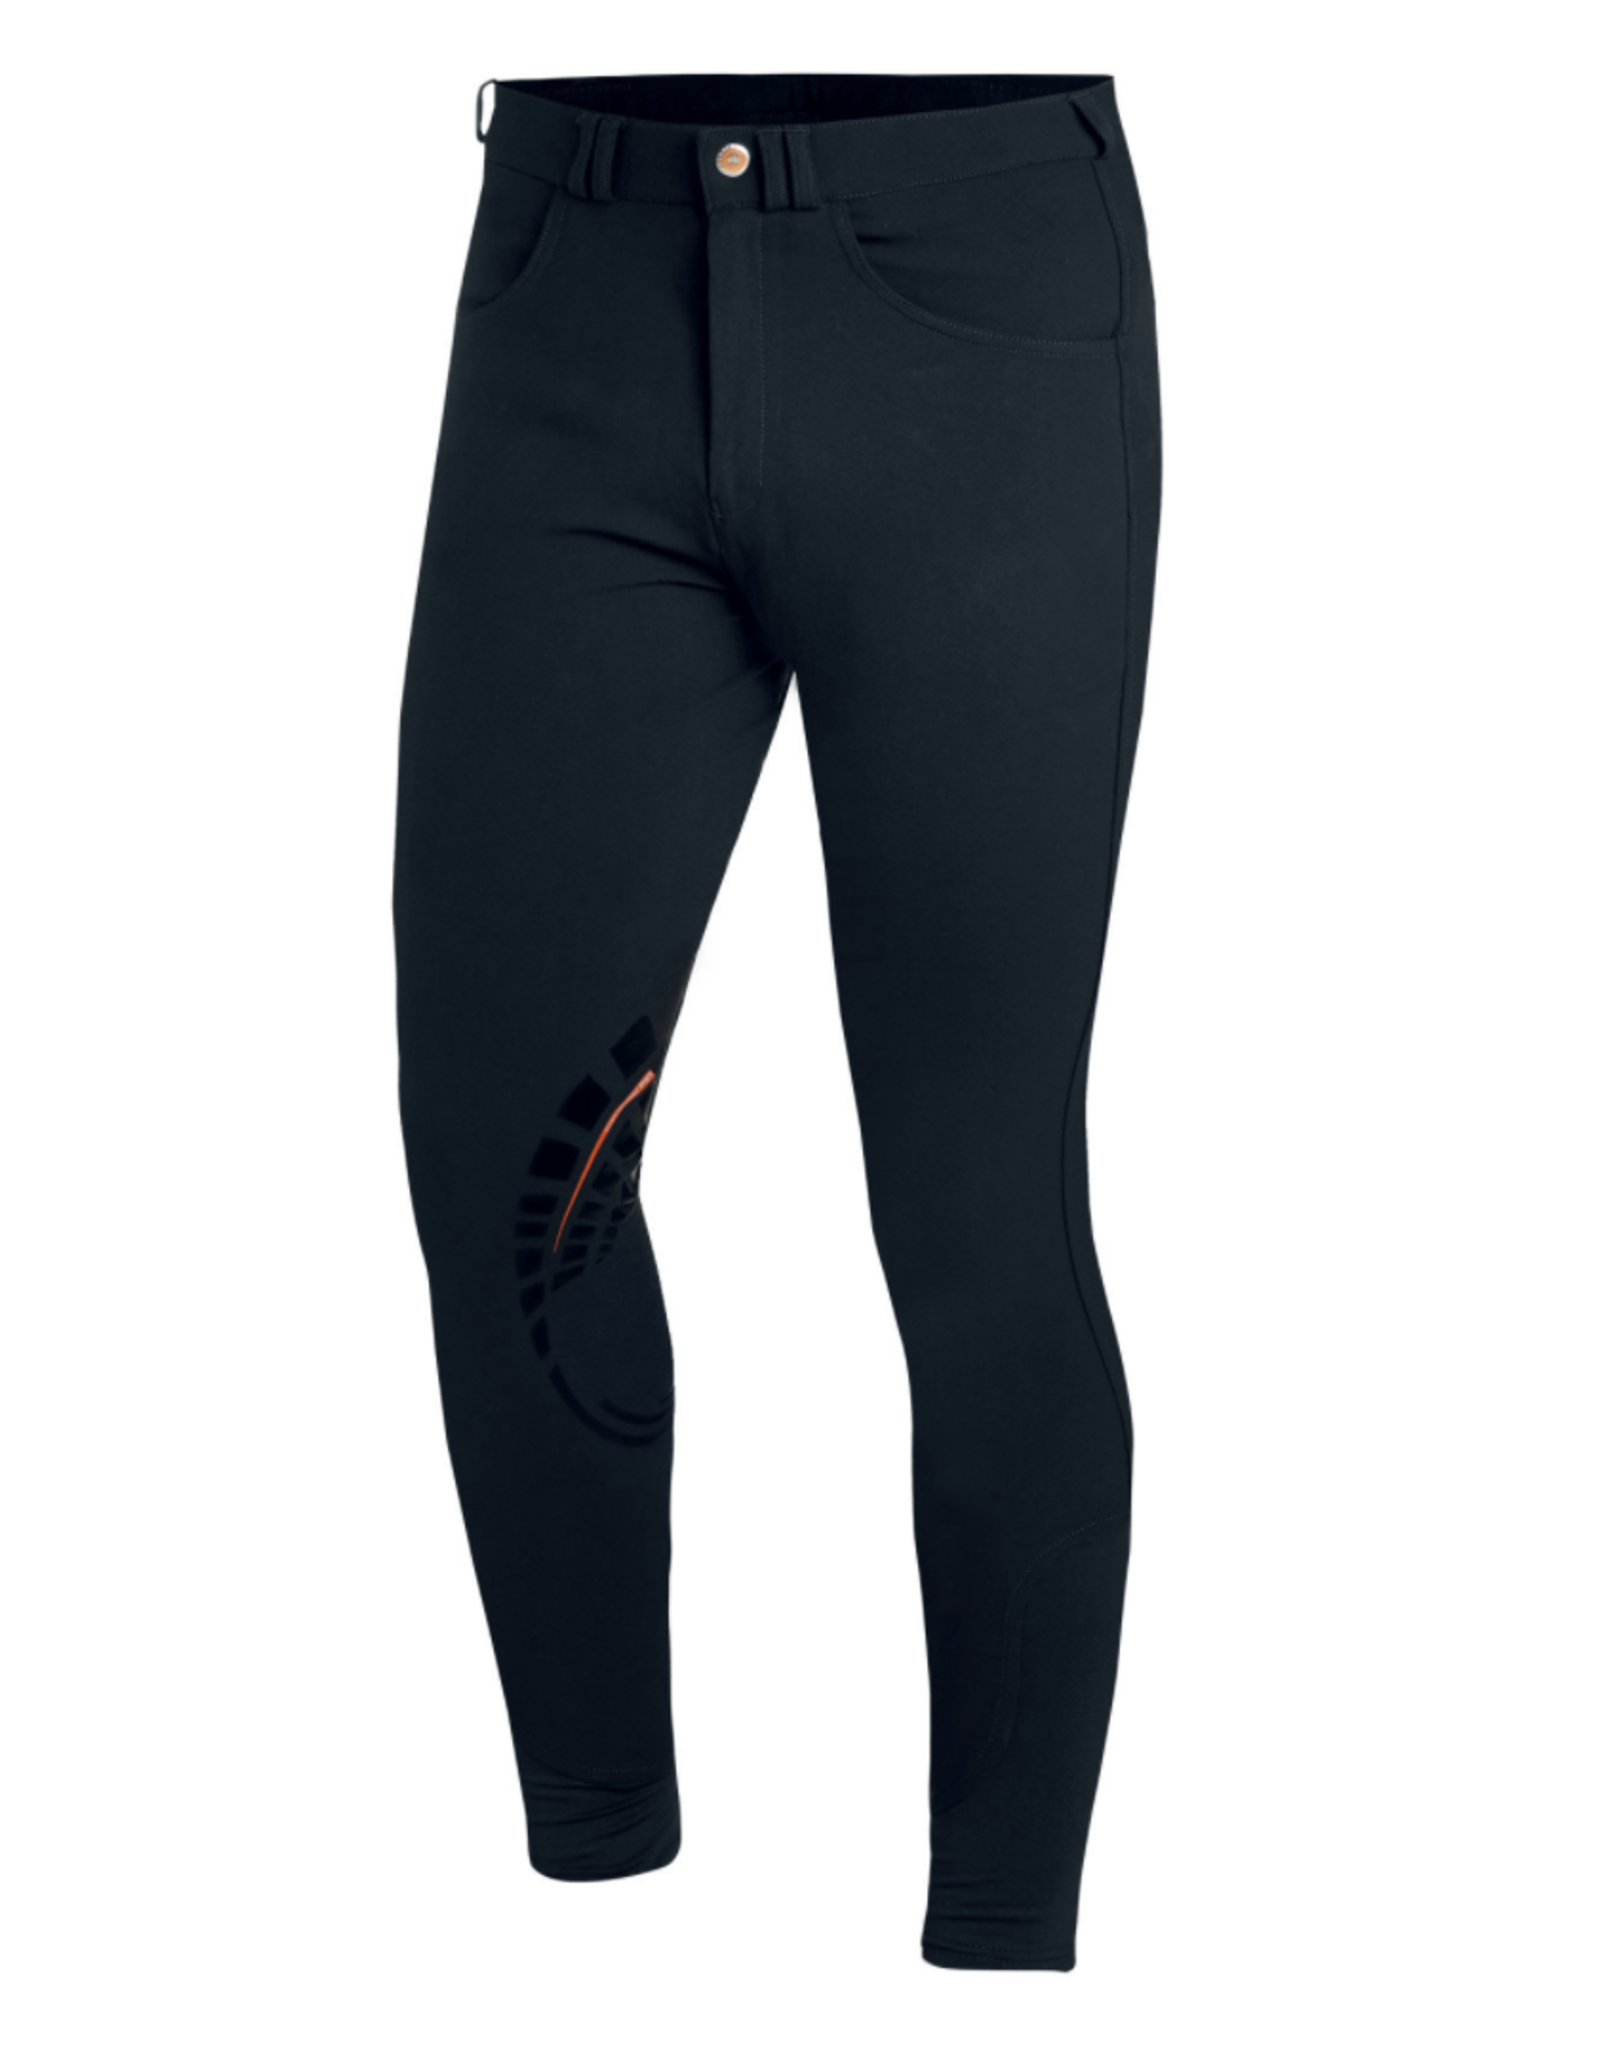 Schockemöhle Men's Draco Grip Knee Patch Breeches